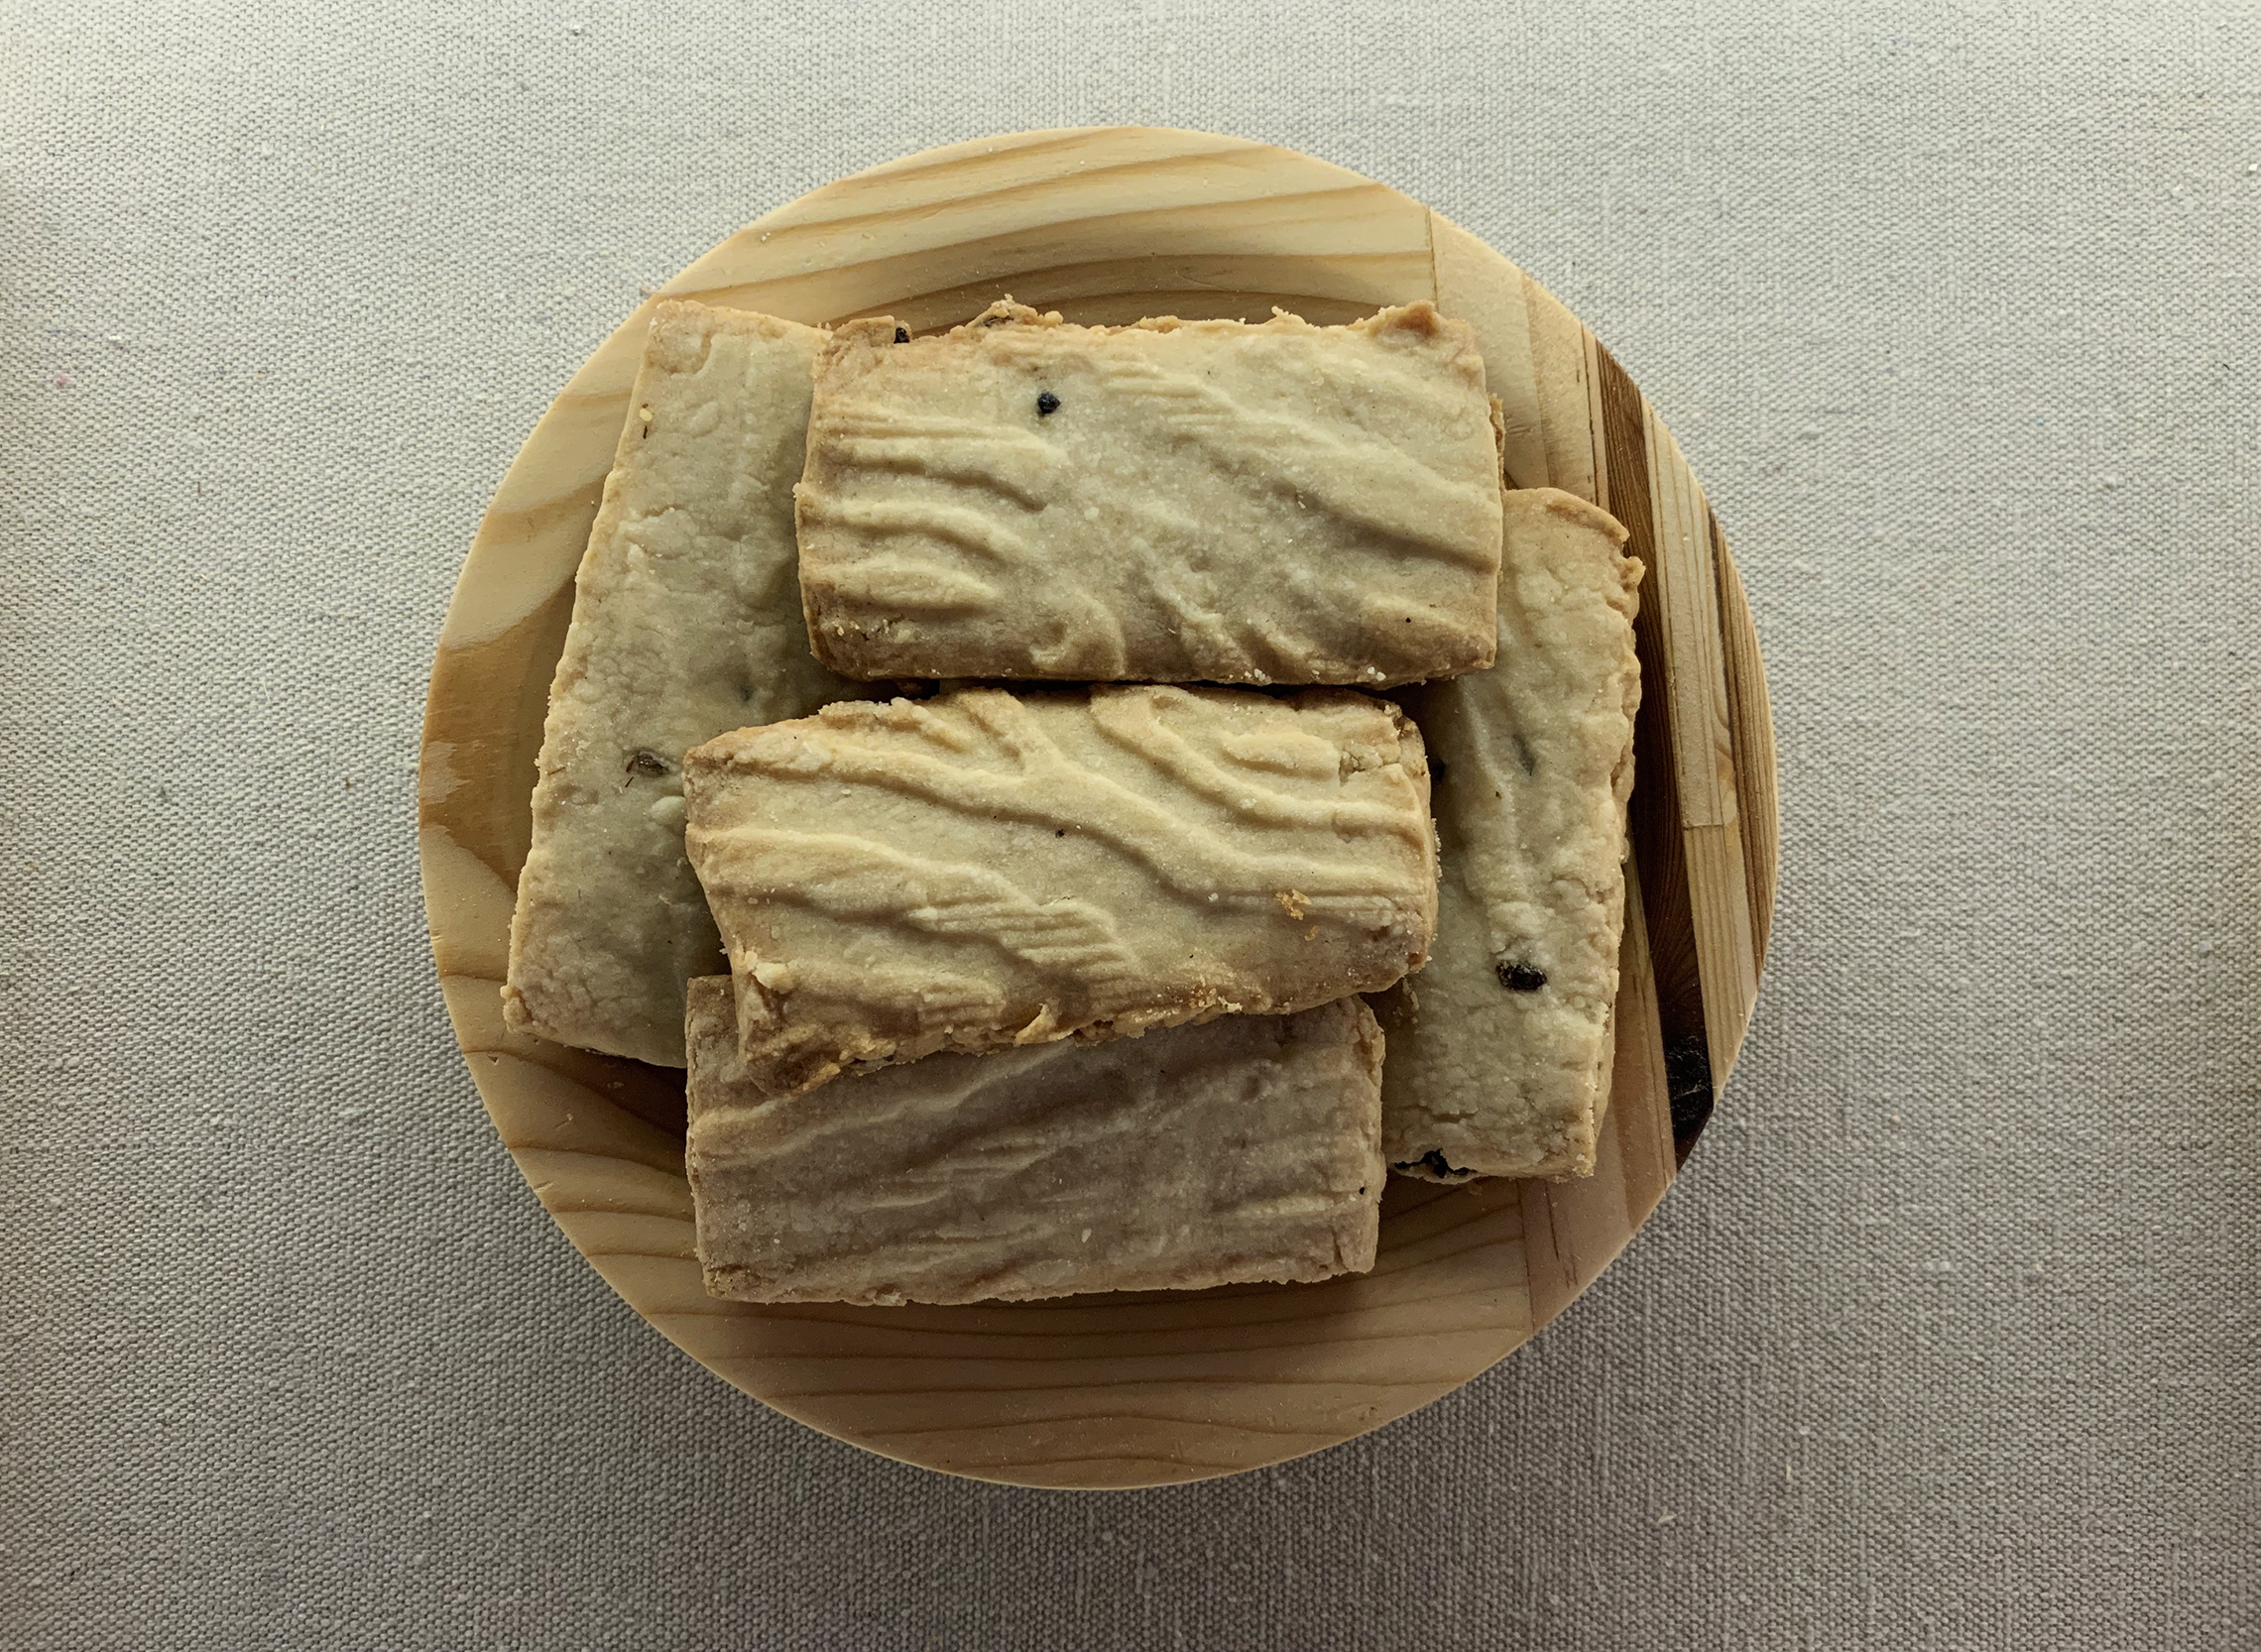 Termite Cookies (2017) and Wood Plate (2017)